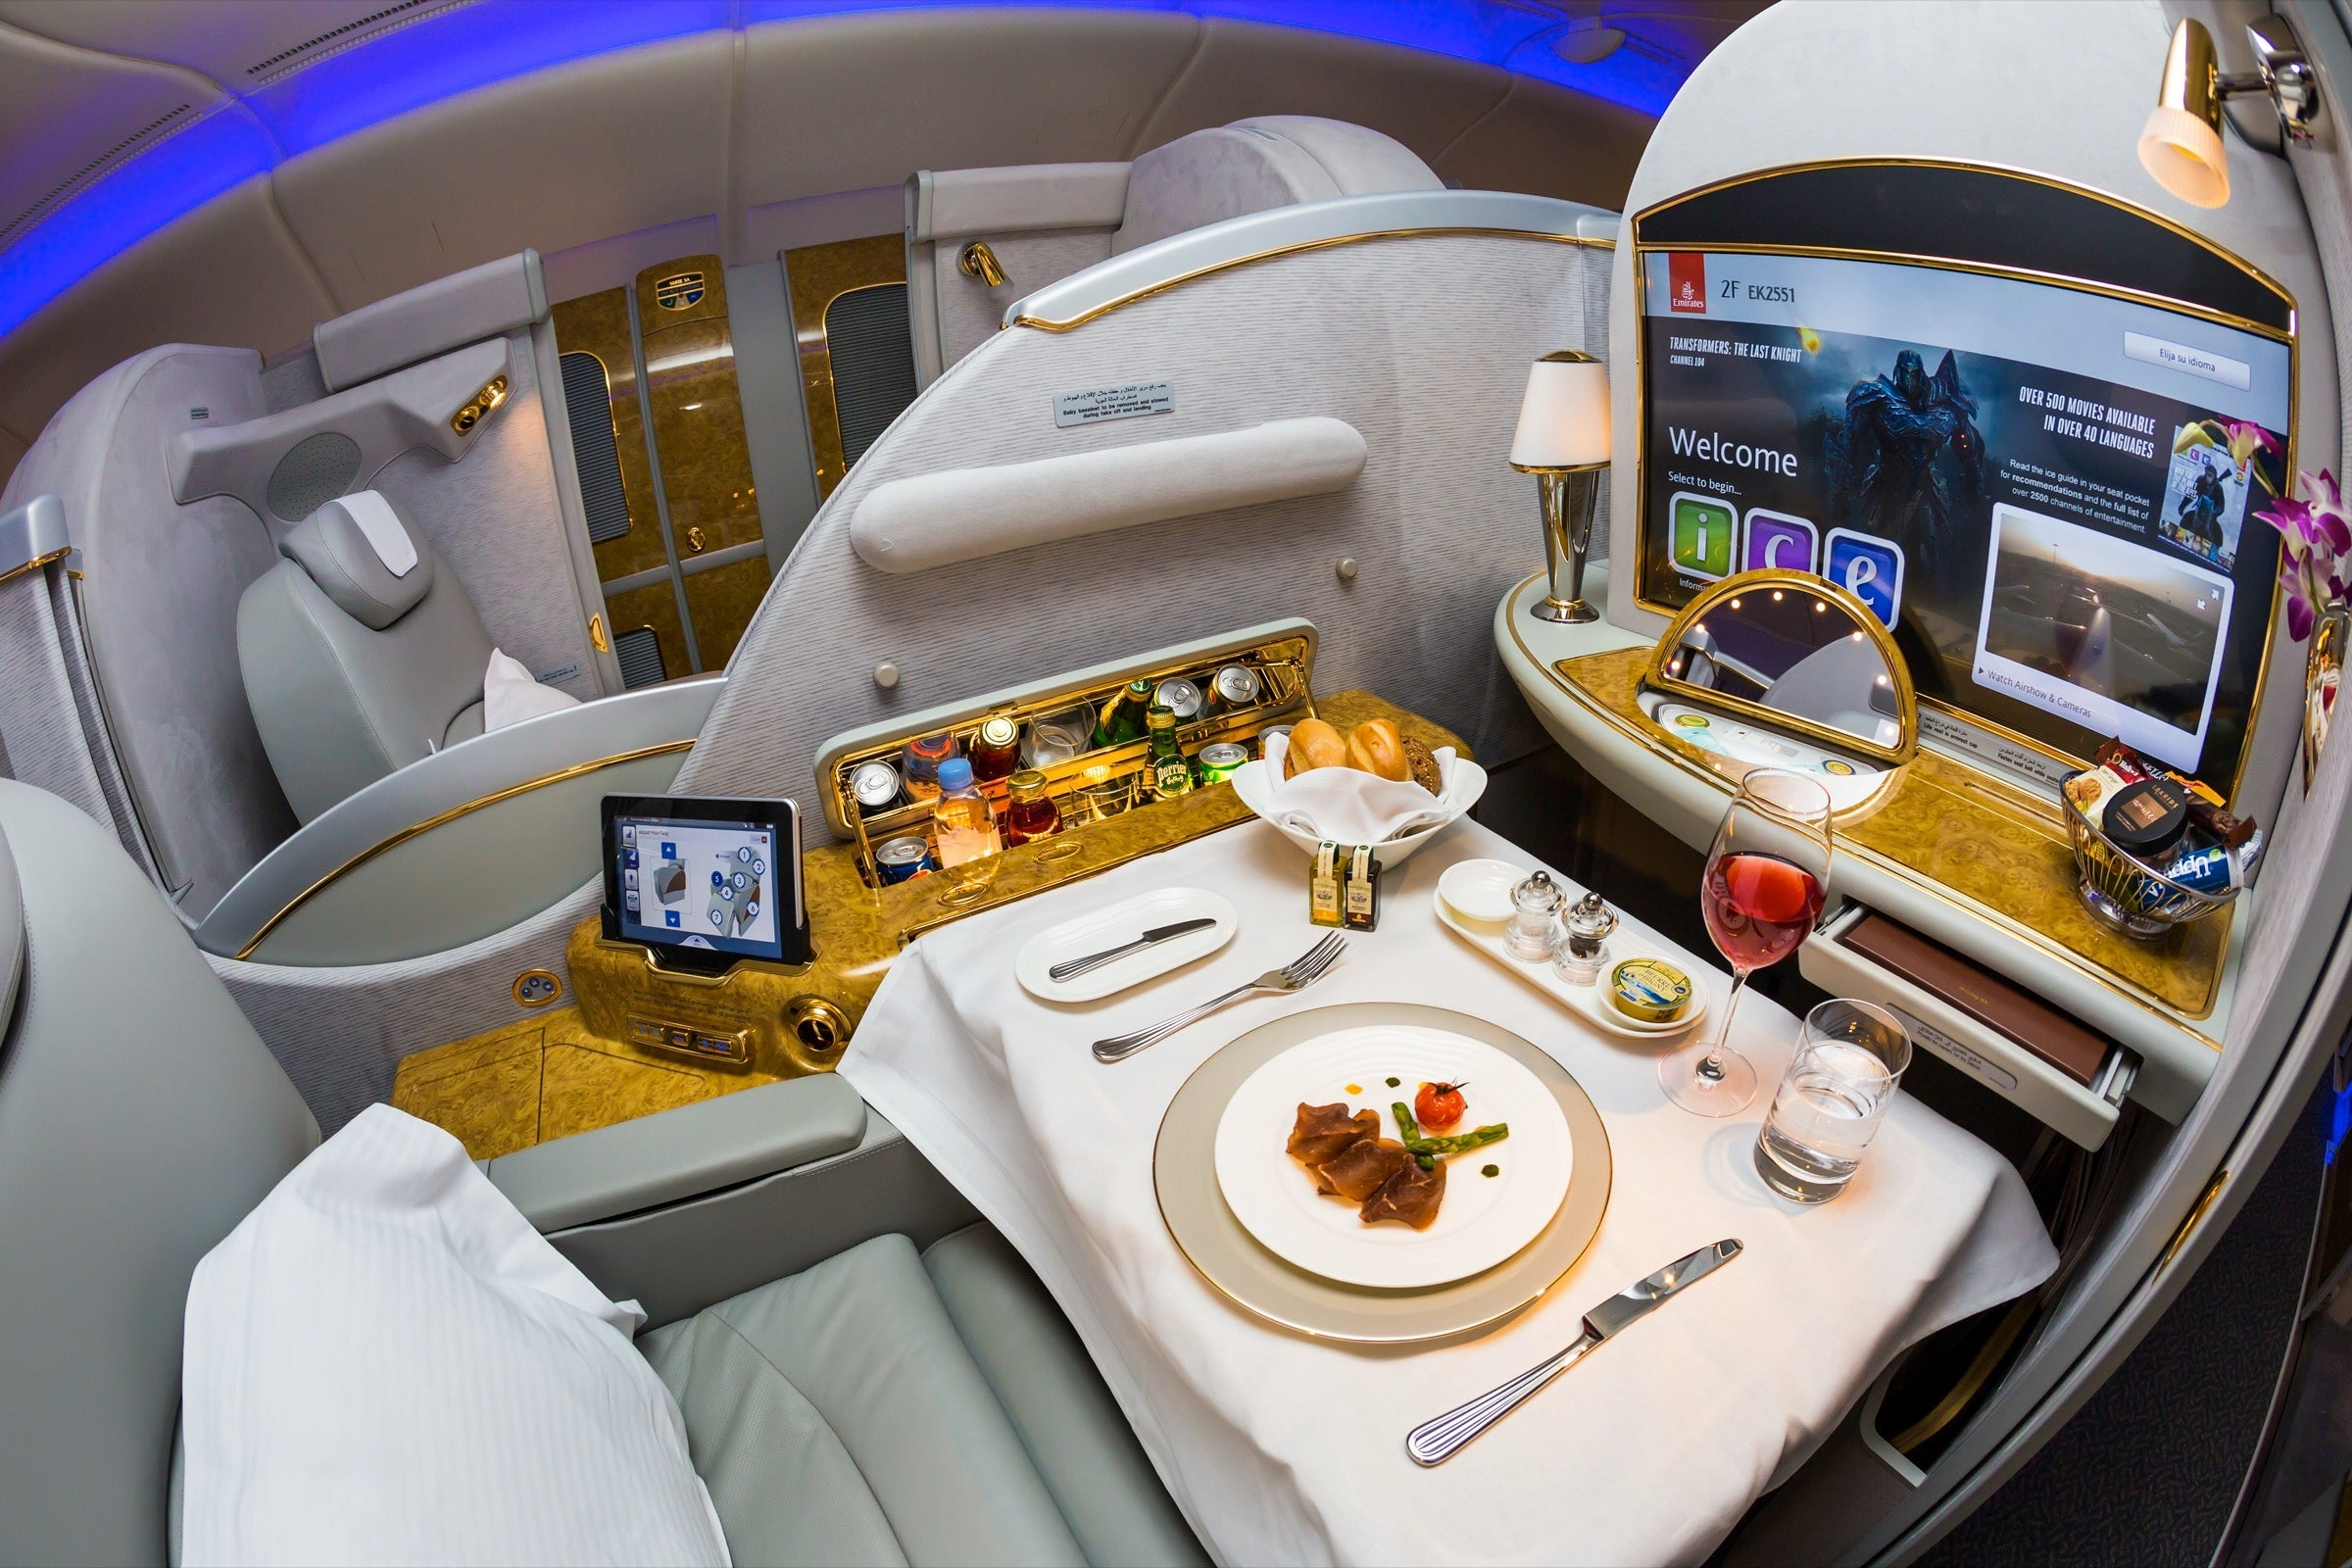 Emirates devaluing first class awards in July by removing Flex awards - The Points Guy UK